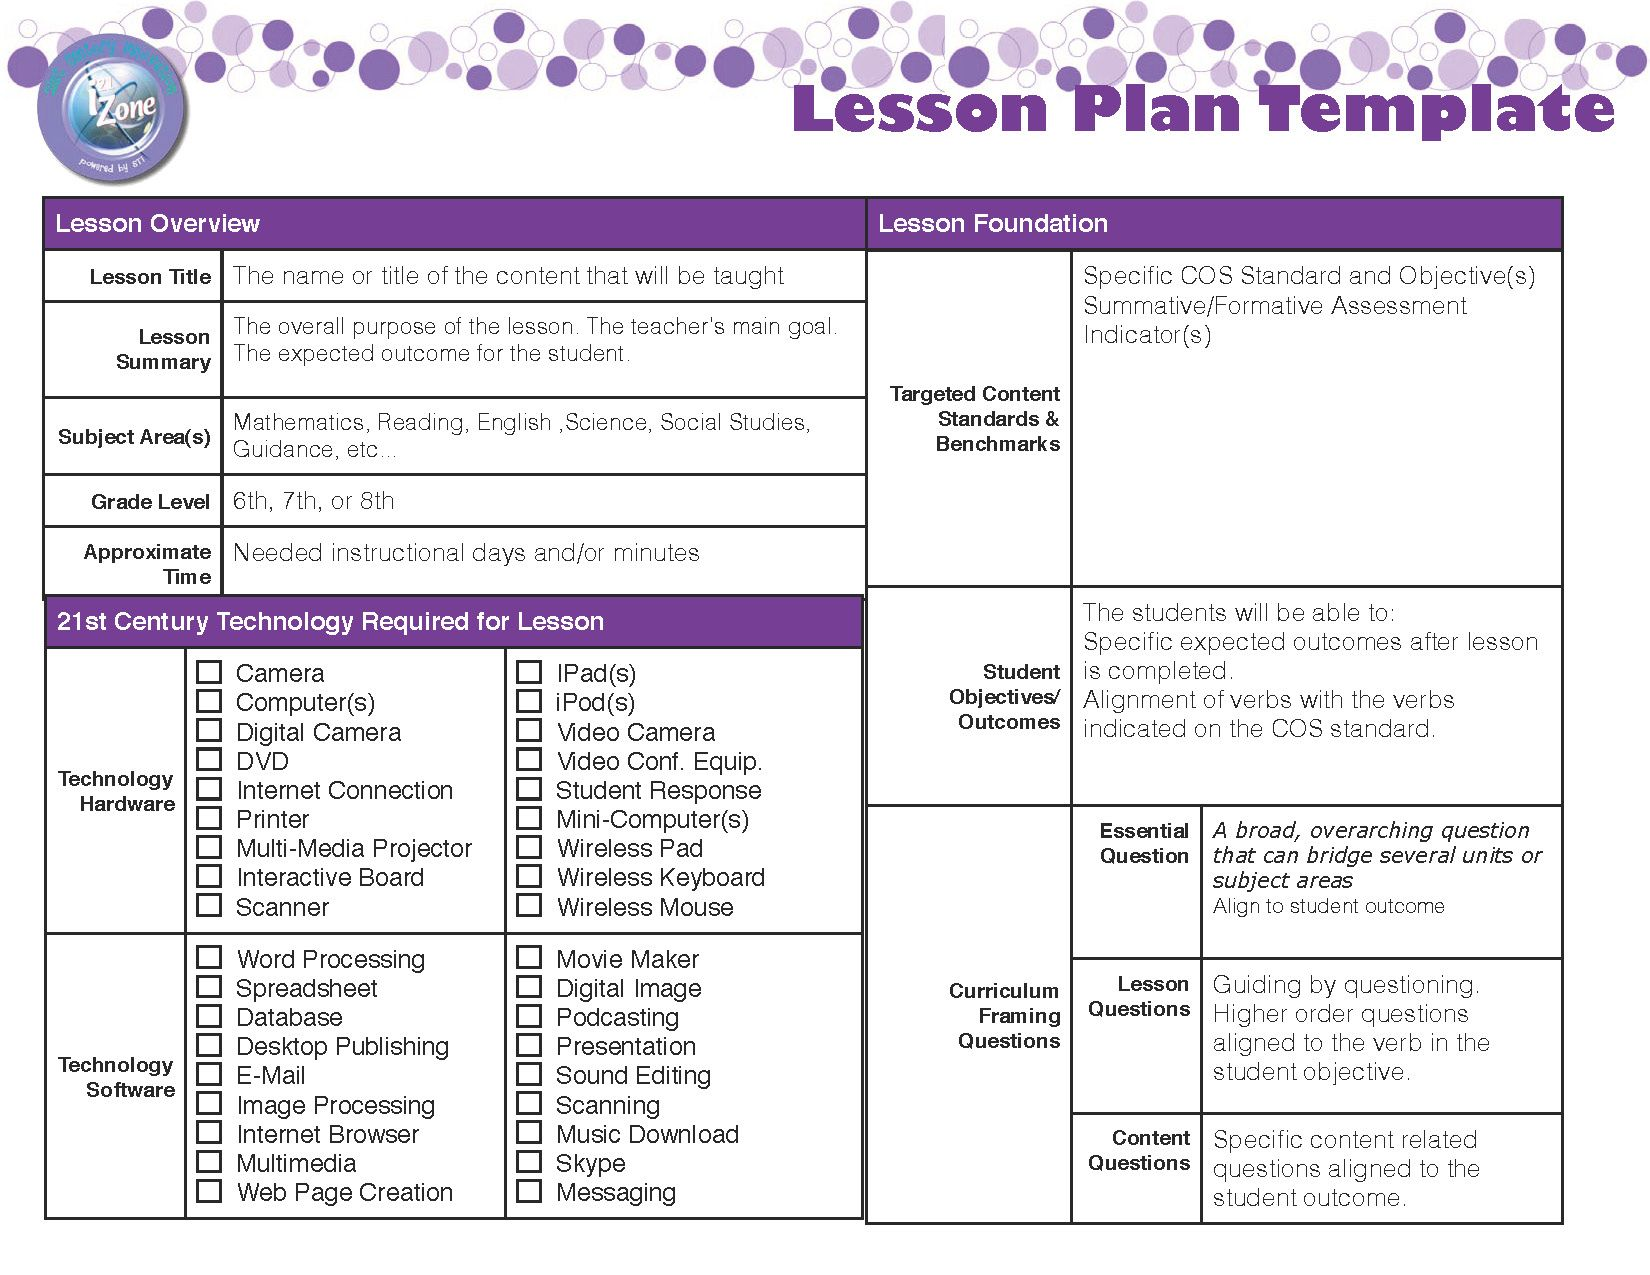 lesson plan template unit plan lesson plan templates pinterest lesson plan templates. Black Bedroom Furniture Sets. Home Design Ideas